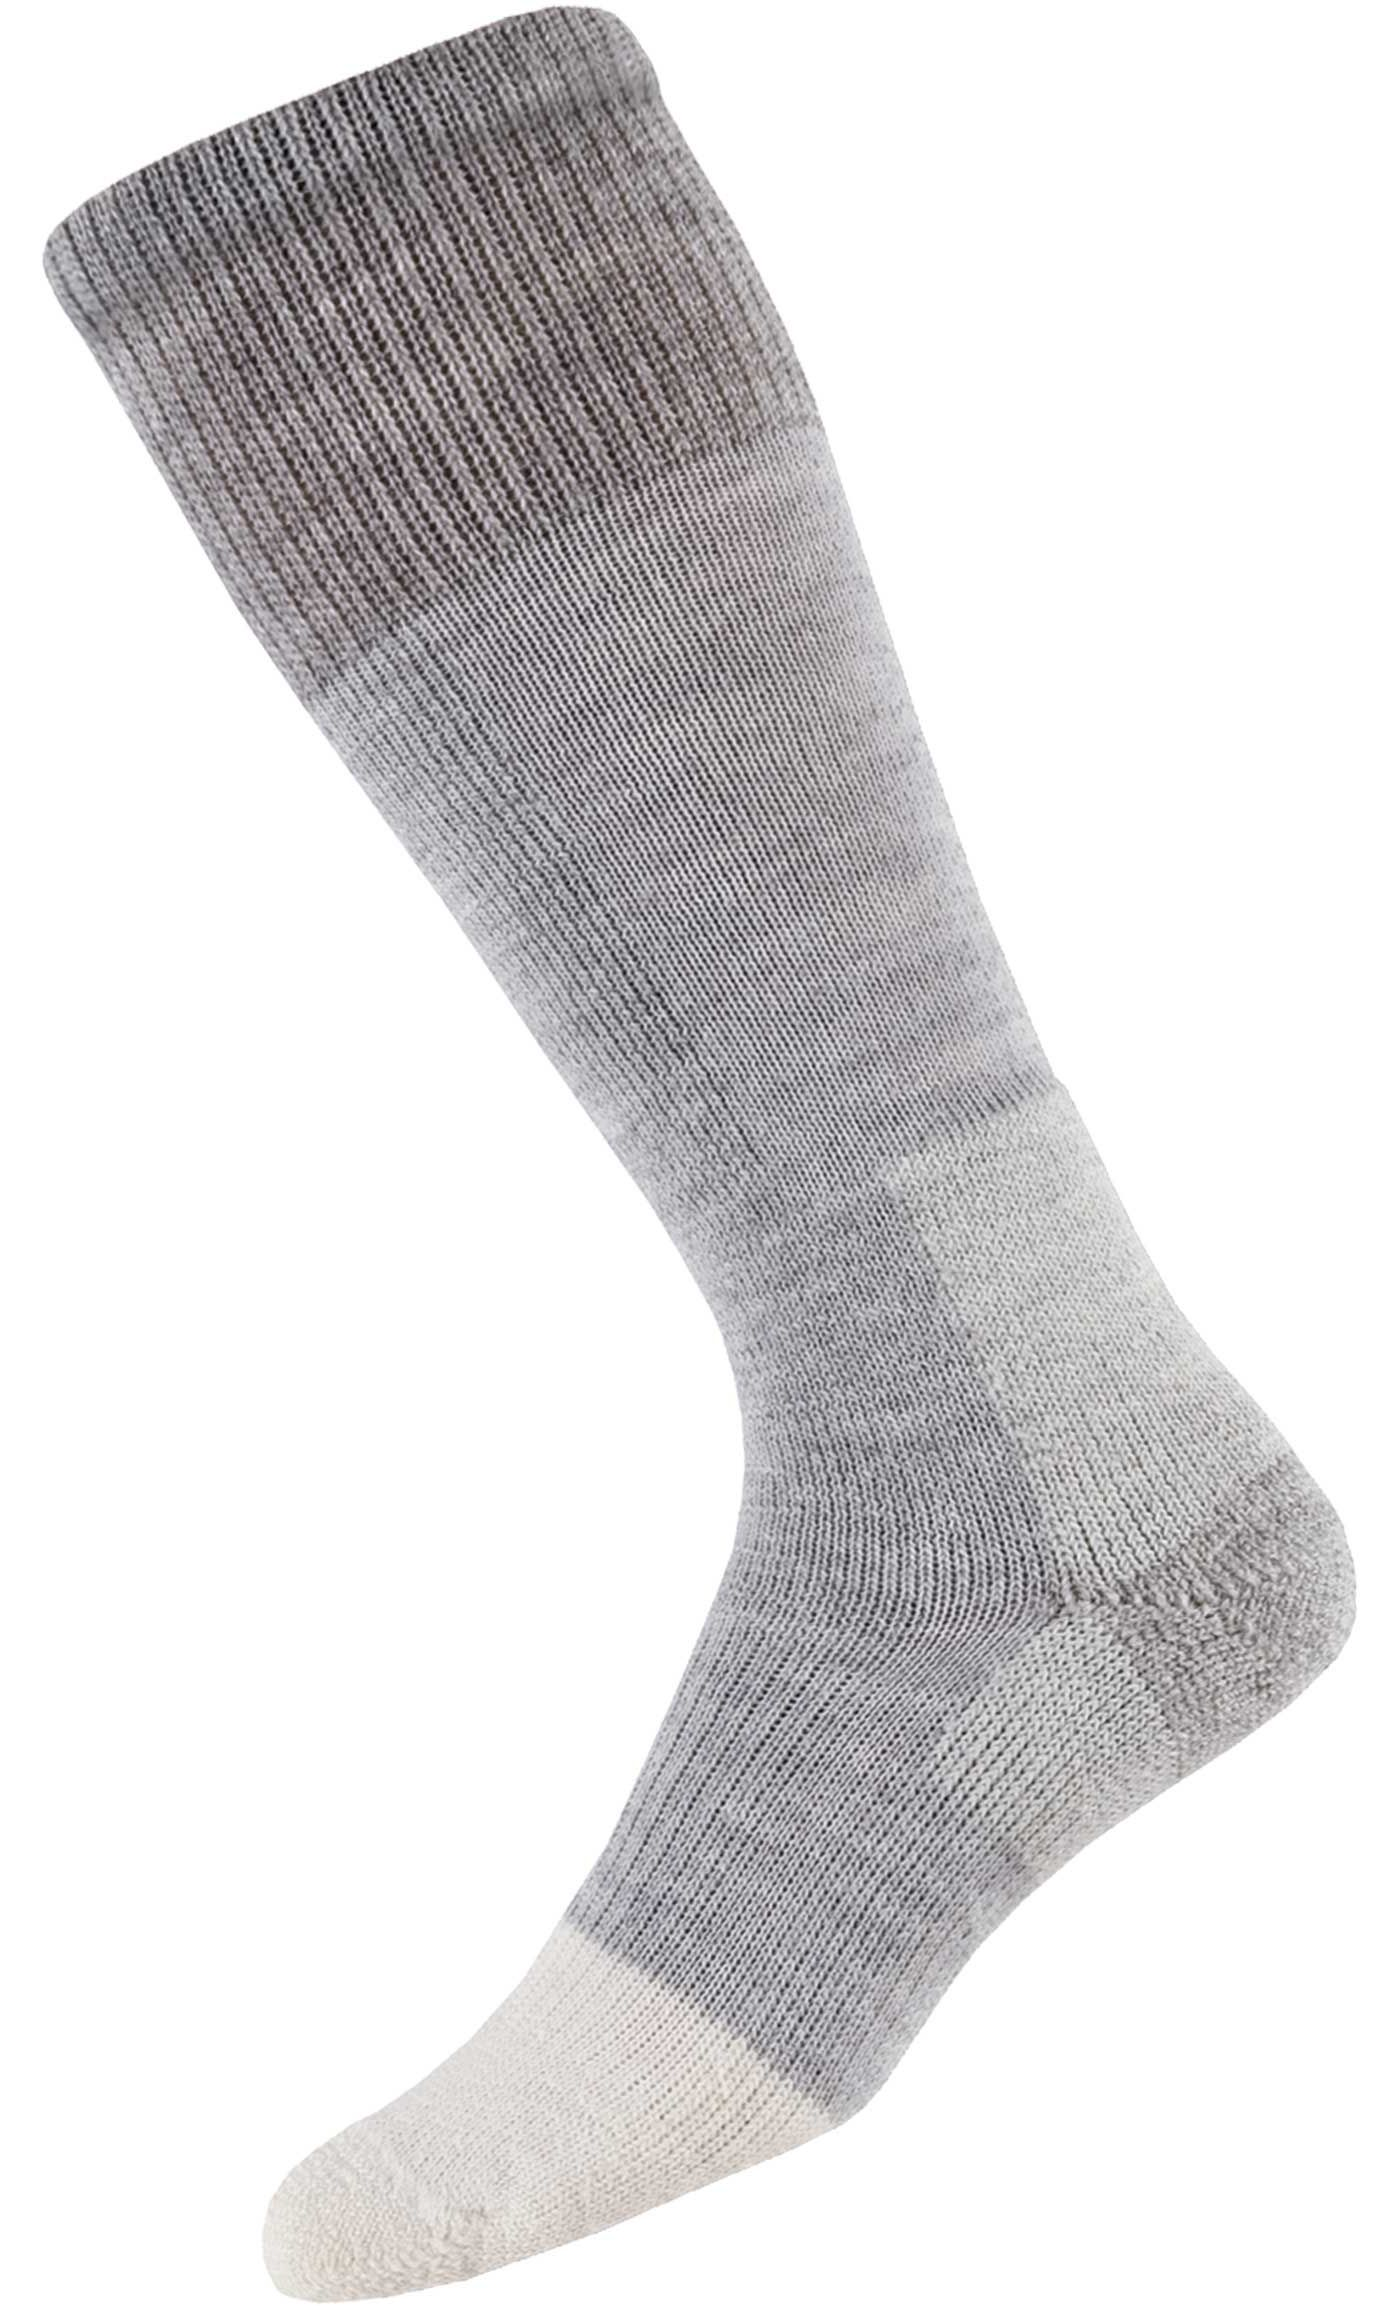 Thor-Lo Extreme Cold Thick Cushion OTC Socks